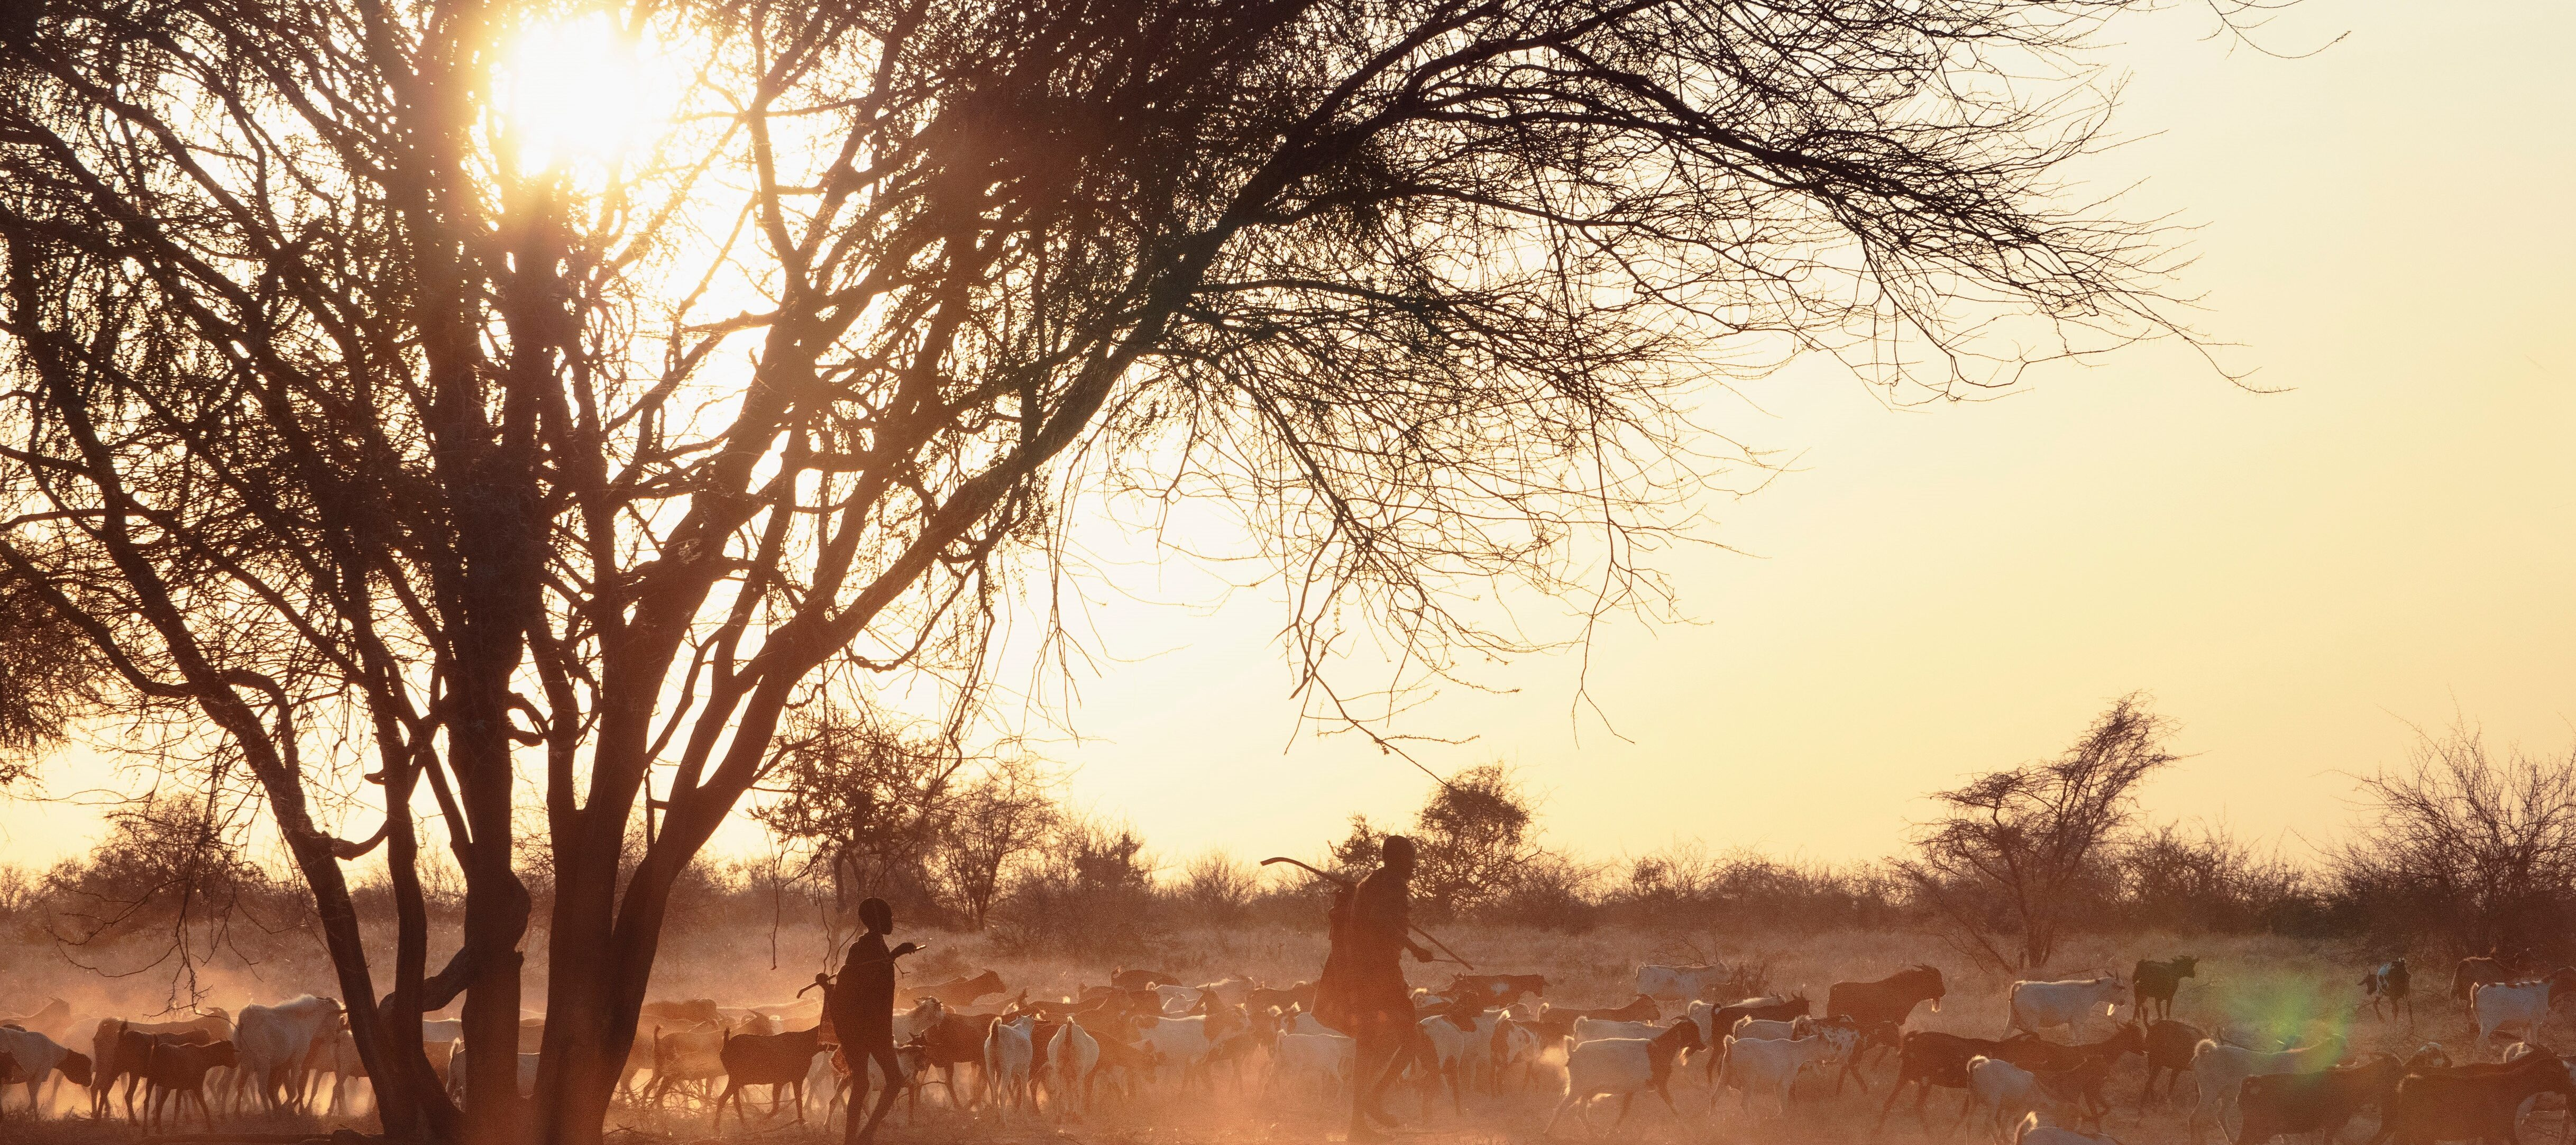 A large herd of goats walk across a dusty field at dawn, with two silhouetted people walking among them. The sun peeks through a silhouetted tree in the field.